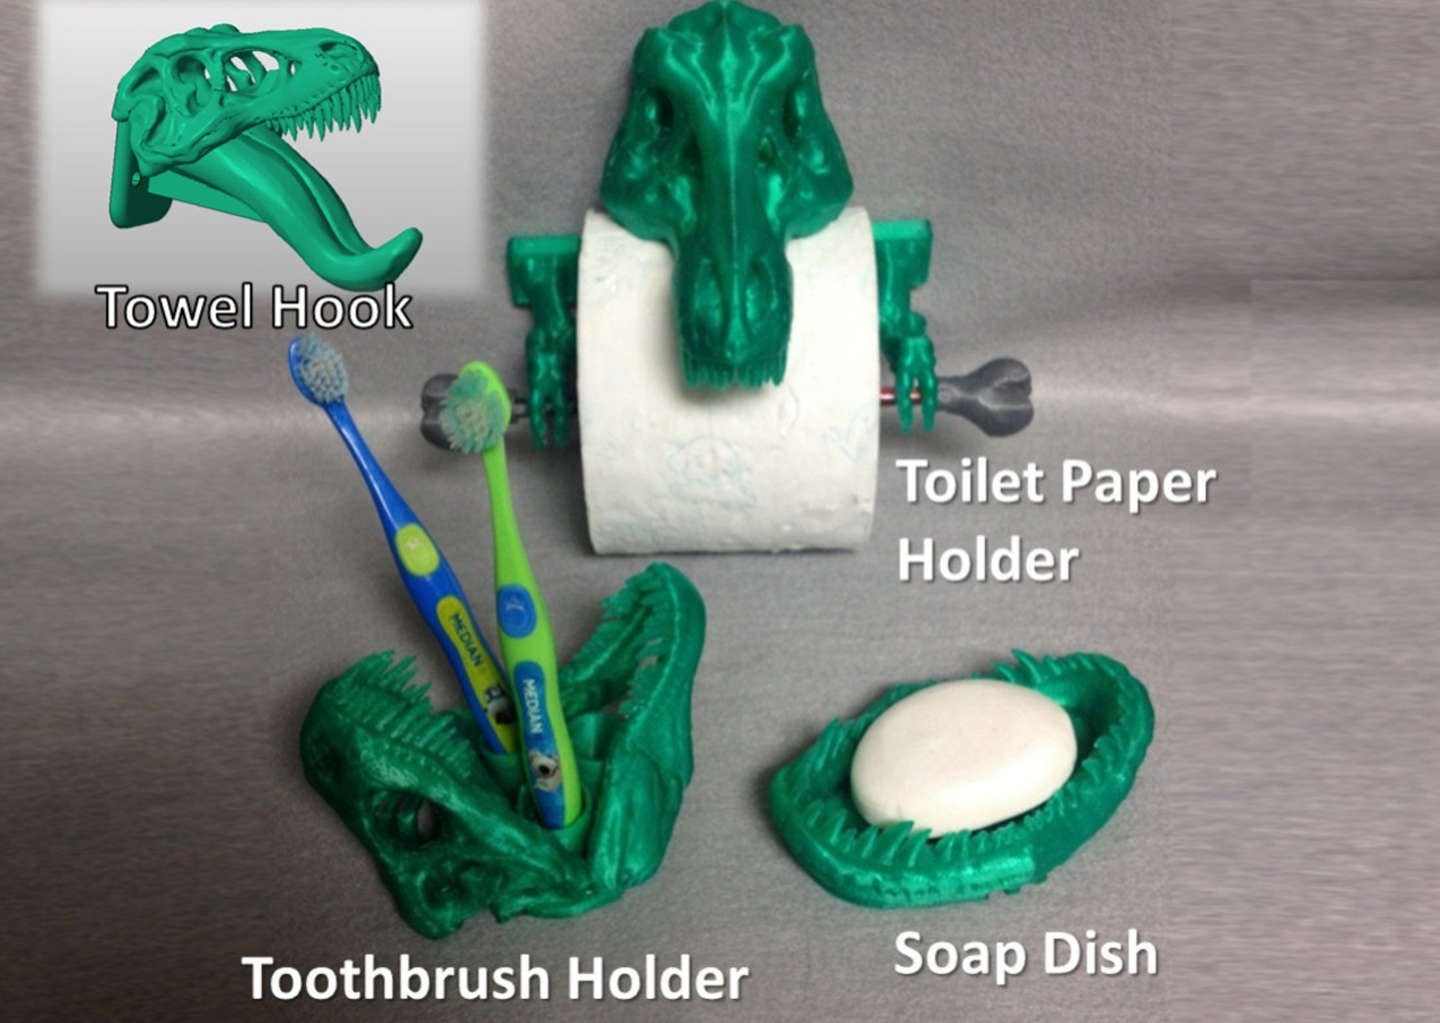 3D printed T-Rex bathroom set